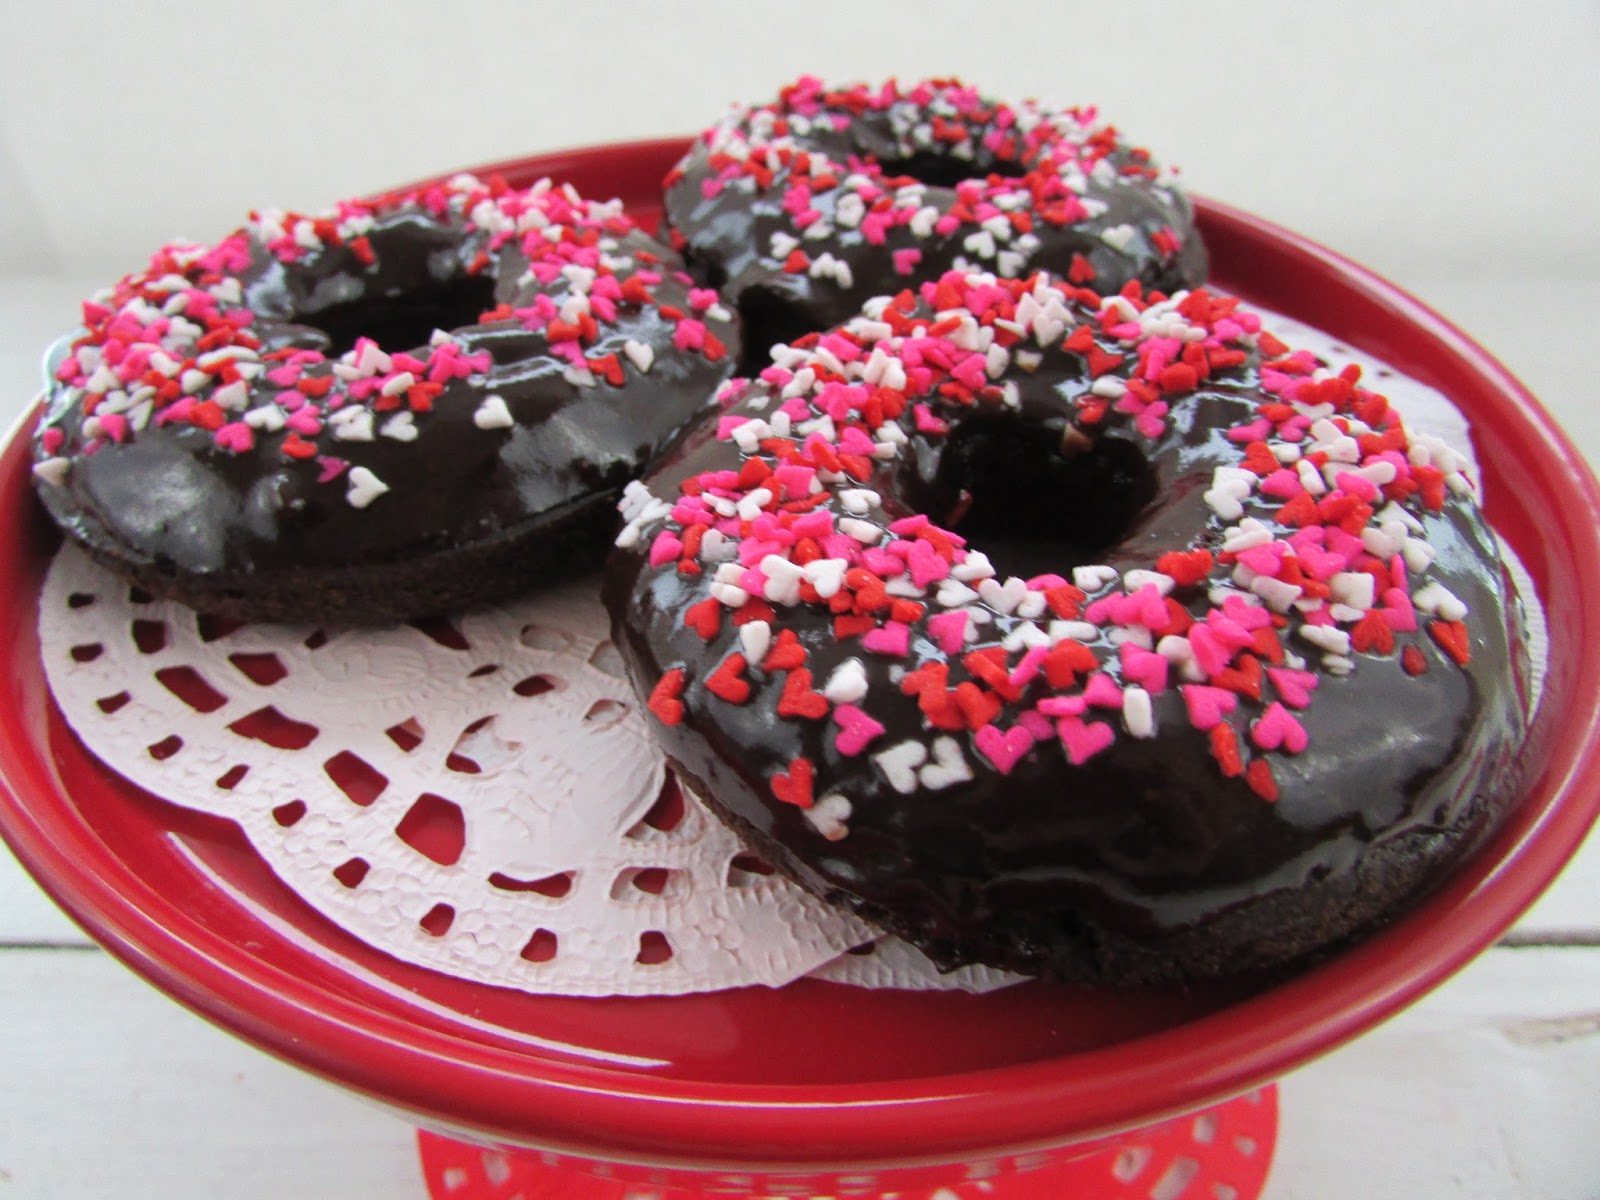 Do Cake Donuts Have Dairy